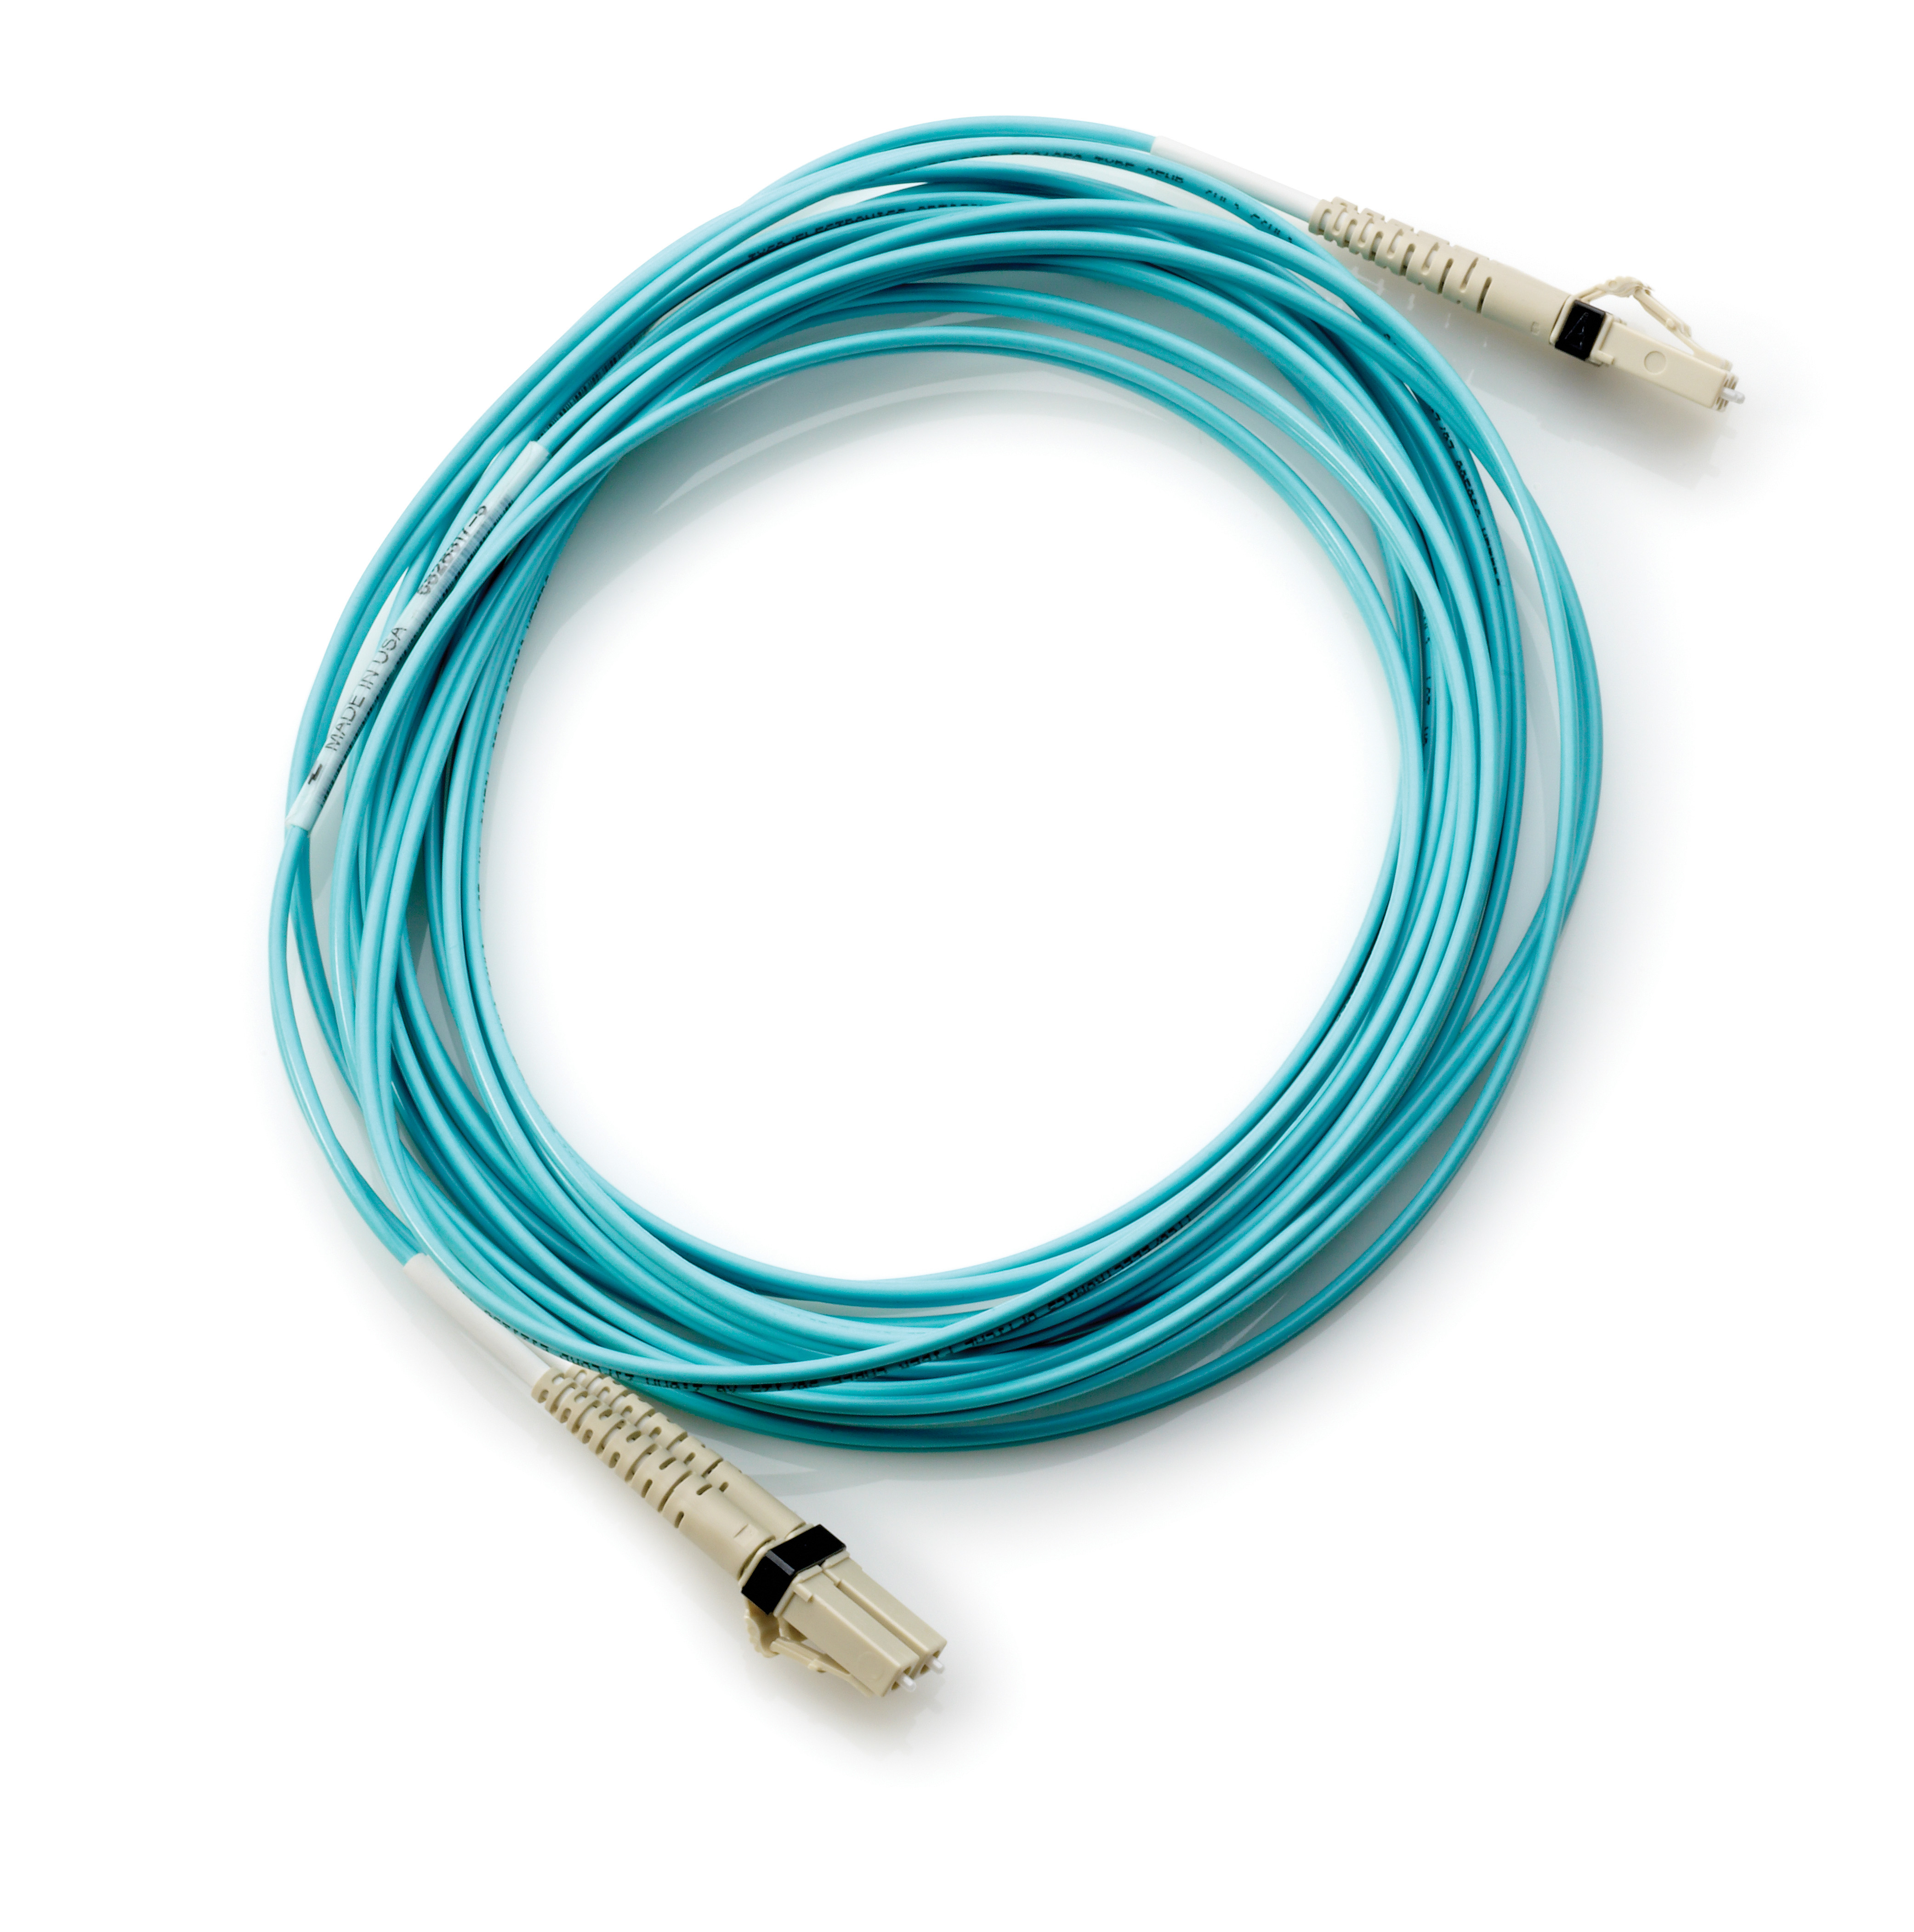 Hp Hp - Network Cable - Lc Multi-mode (m) - Lc Multi-mode (m) - 2 M - Fibre Optic - 50 / 125 Micron - Om3 - For Hp 1810, 2530, 2920, 5406, 5500, 7506, Sn8000b 32; Modular Smart Array 1040, 2040, 2040 10 Aj835a - xep01